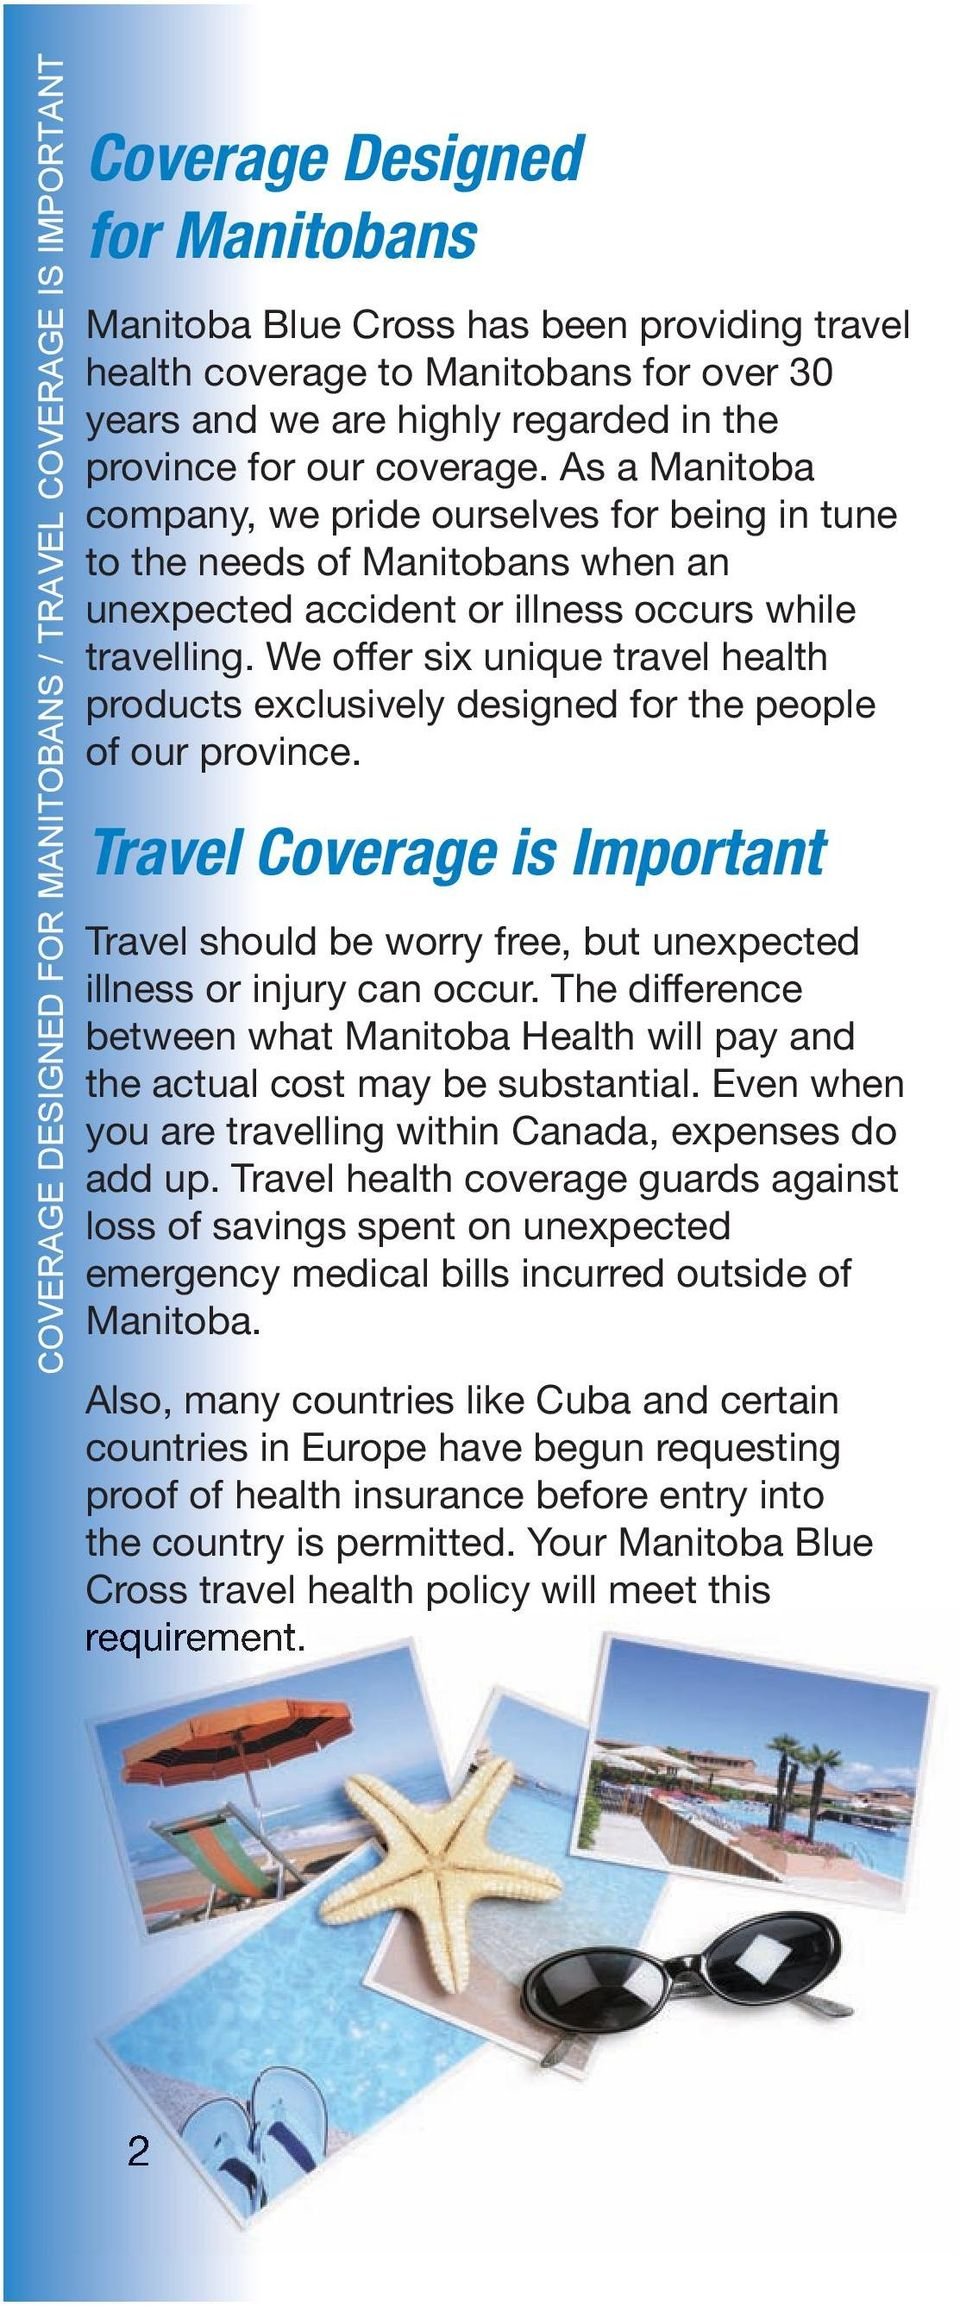 As a Manitoba company, we pride ourselves for being in tune to the needs of Manitobans when an unexpected accident or illness occurs while travelling.